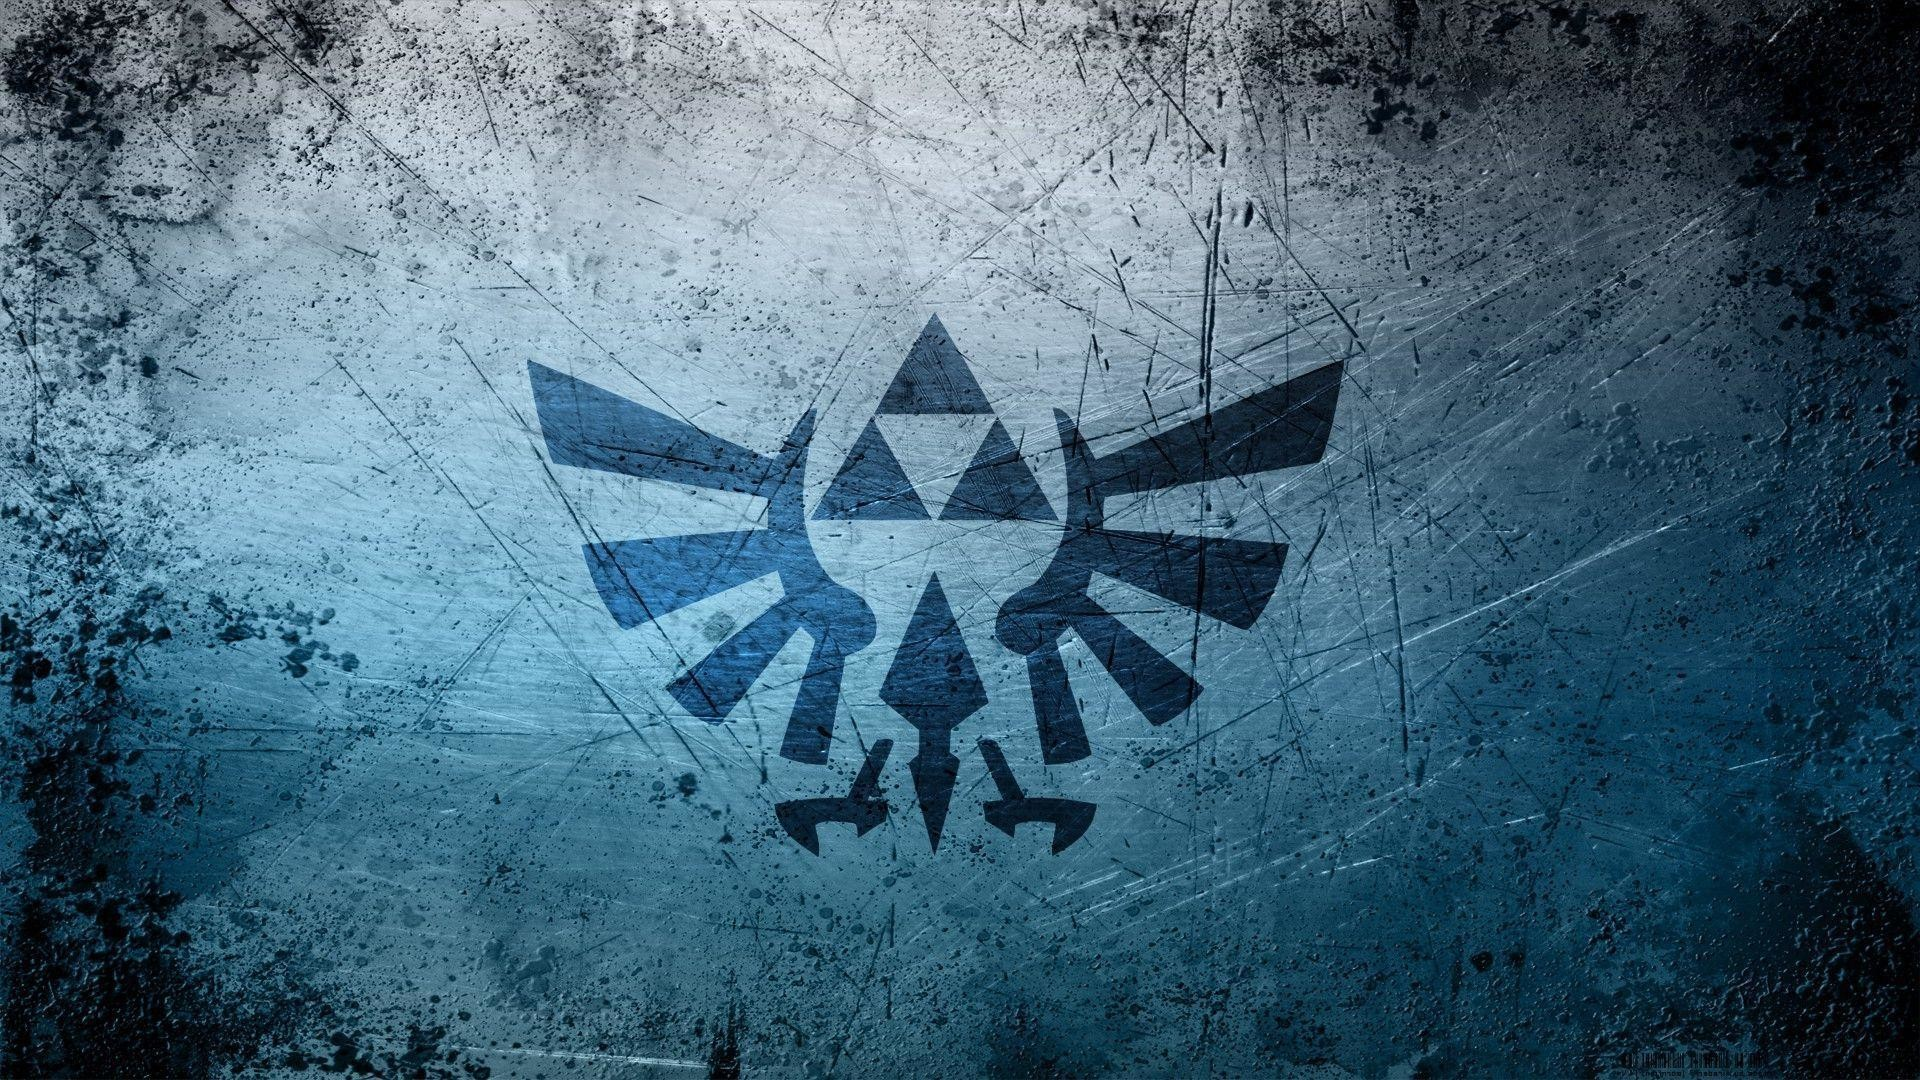 Love Wallpaper For Iphone 5 Zelda Triforce Wallpaper 72 Images